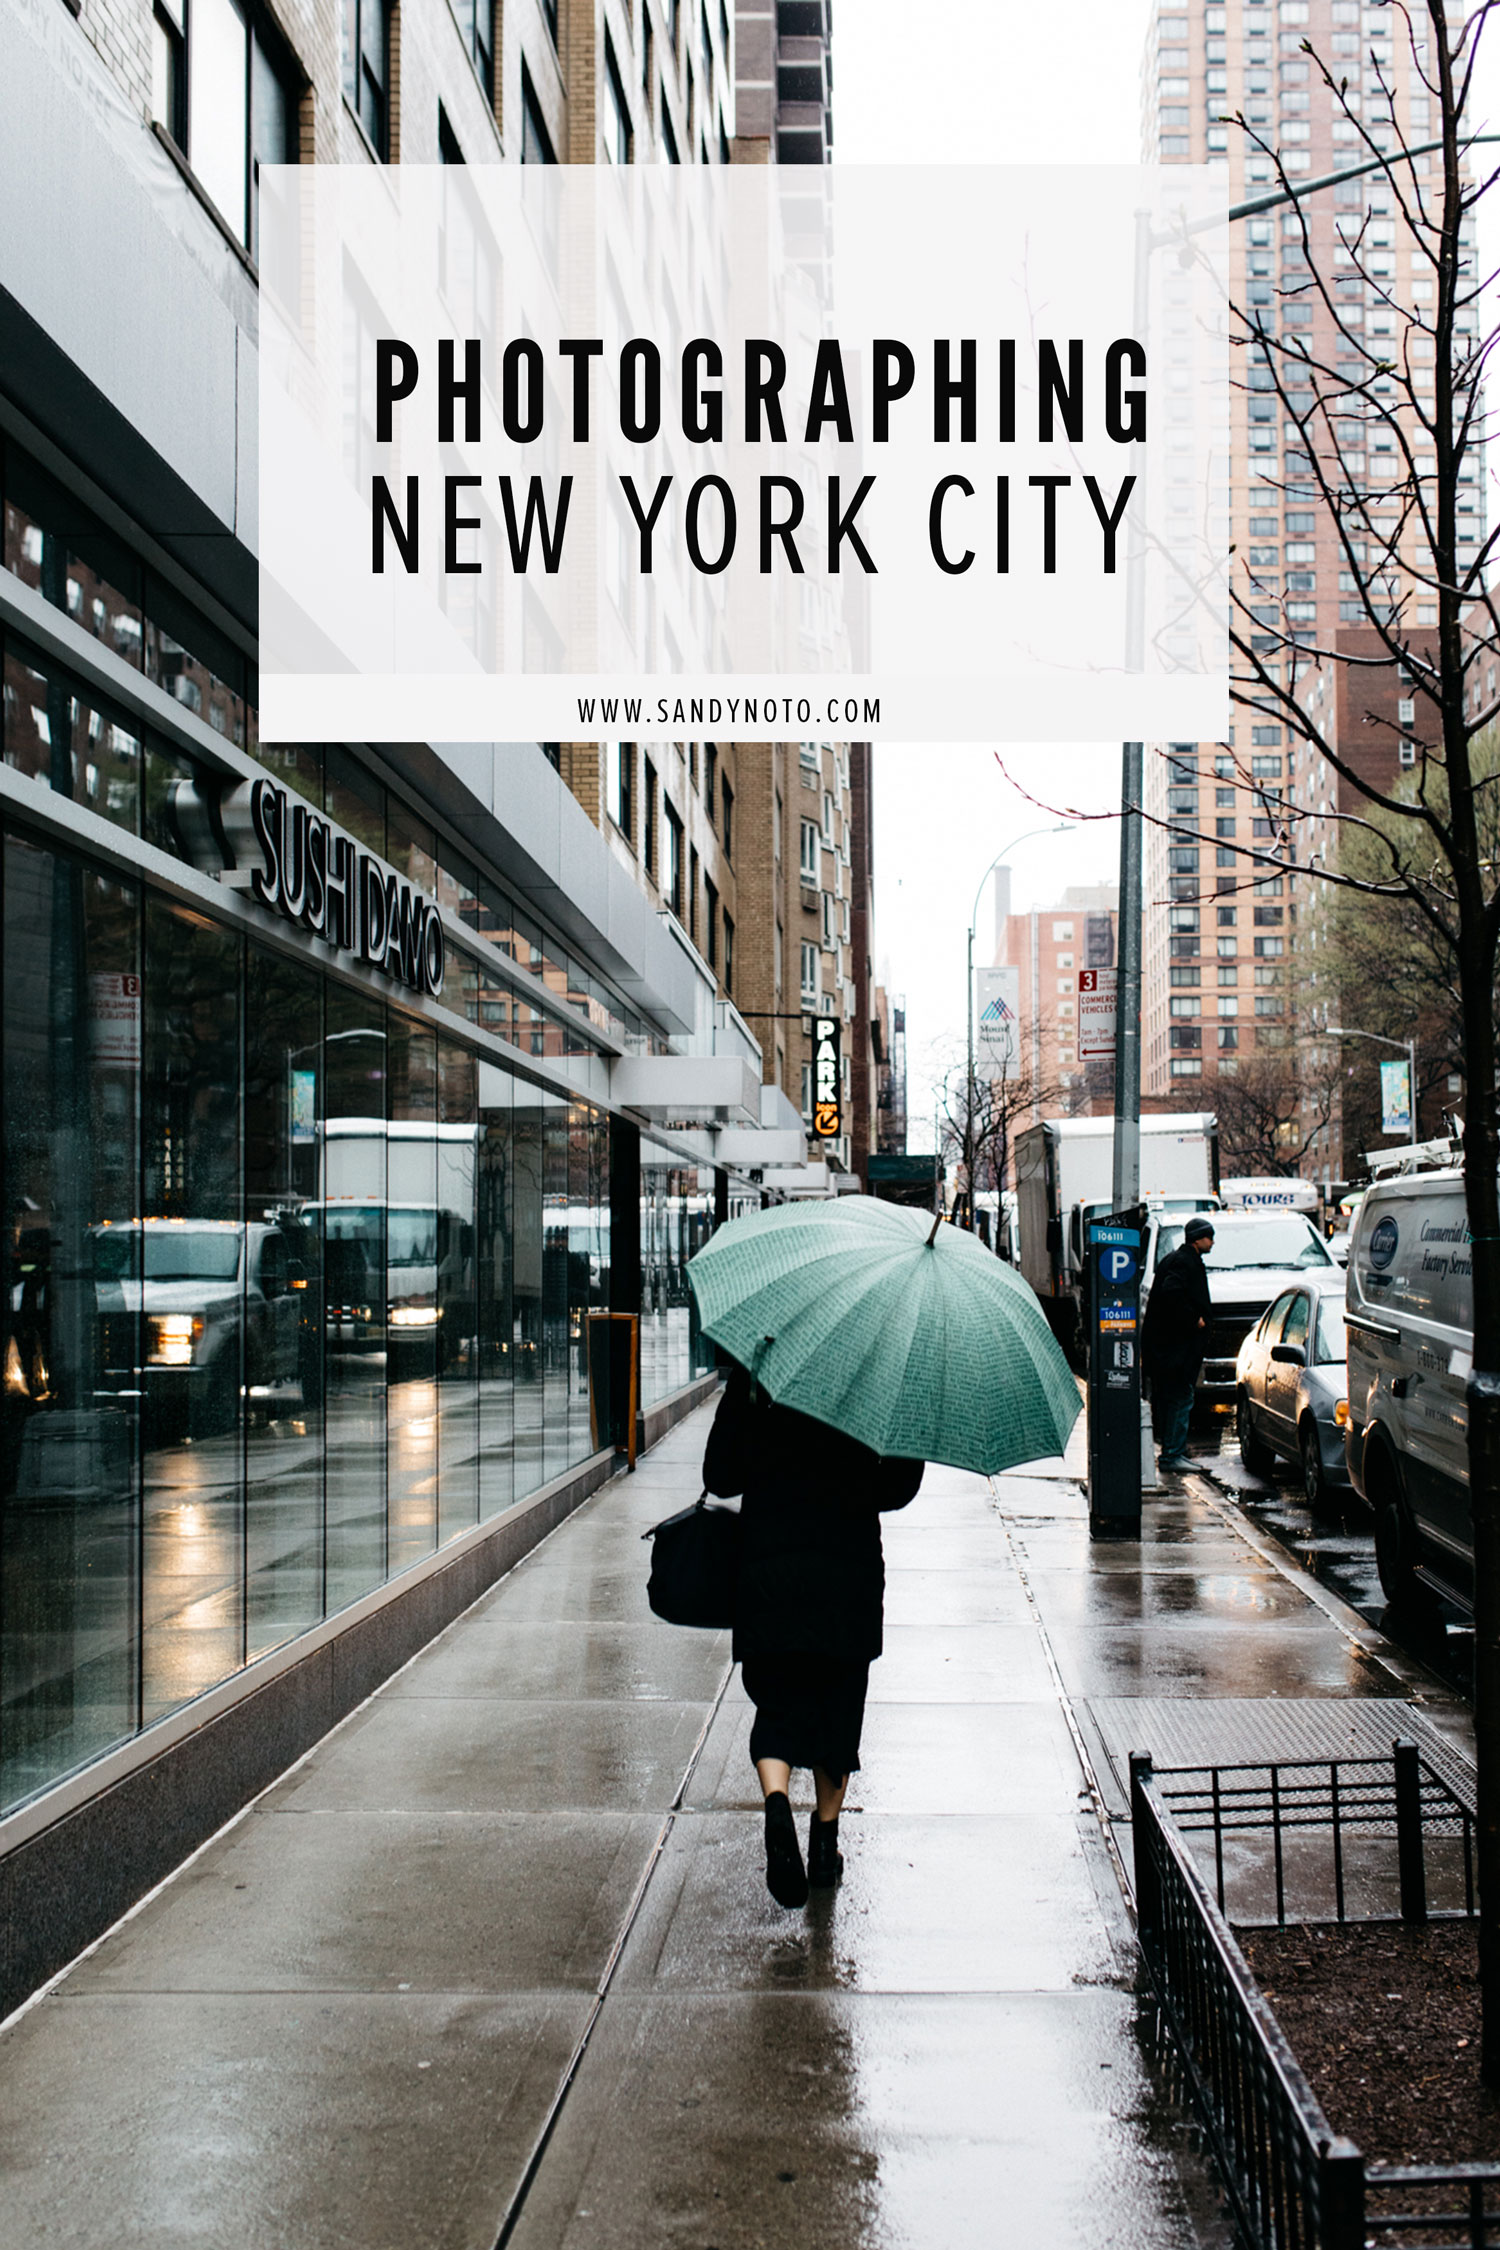 Travel Photography in New York City